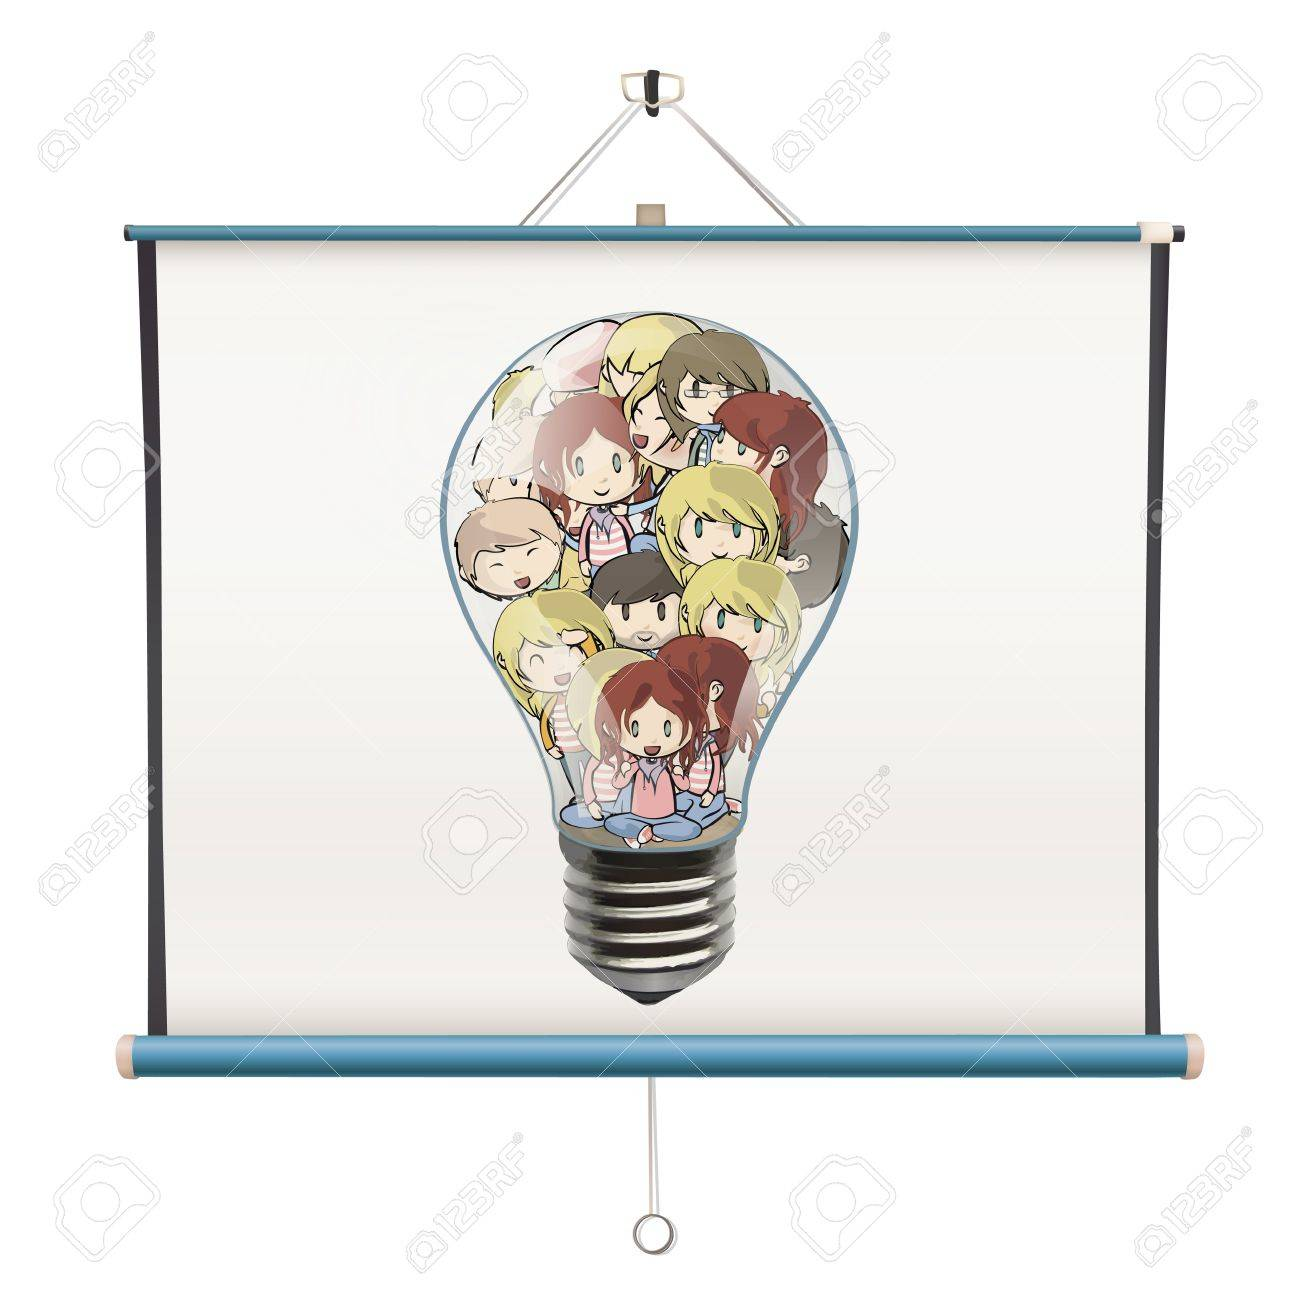 Many children inside a bulb printed on projector screen. isolated  design. Stock Vector - 19198319